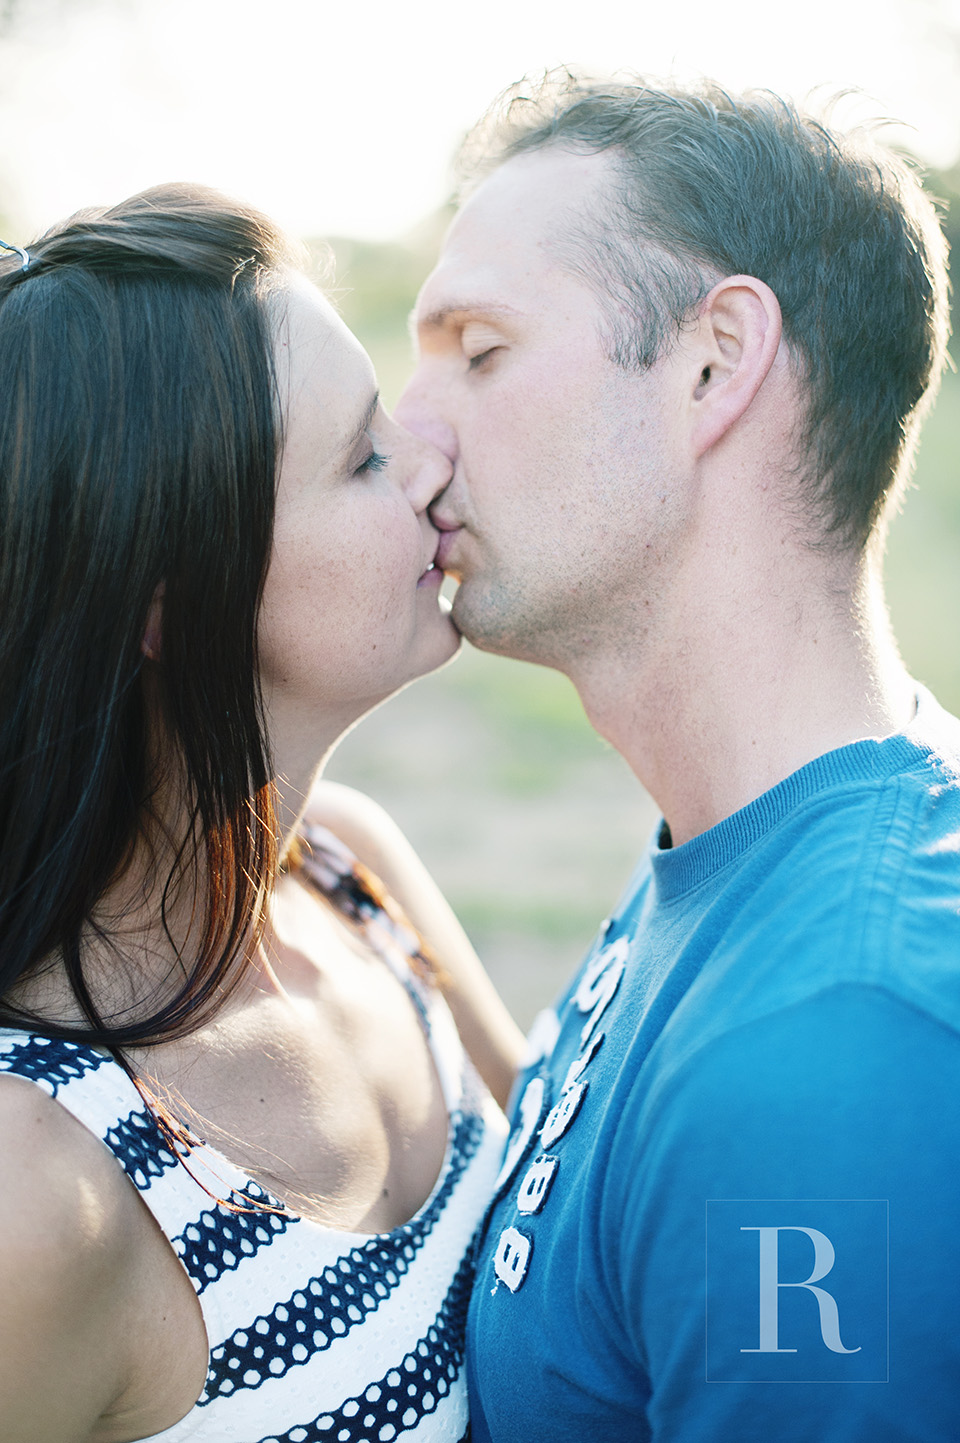 RYAN PARKER PHOTOGRAPHY_ESTEE & BERNARD_ENGAGEMENT SESSION_JOHANNESBURG DSC_1898.jpg